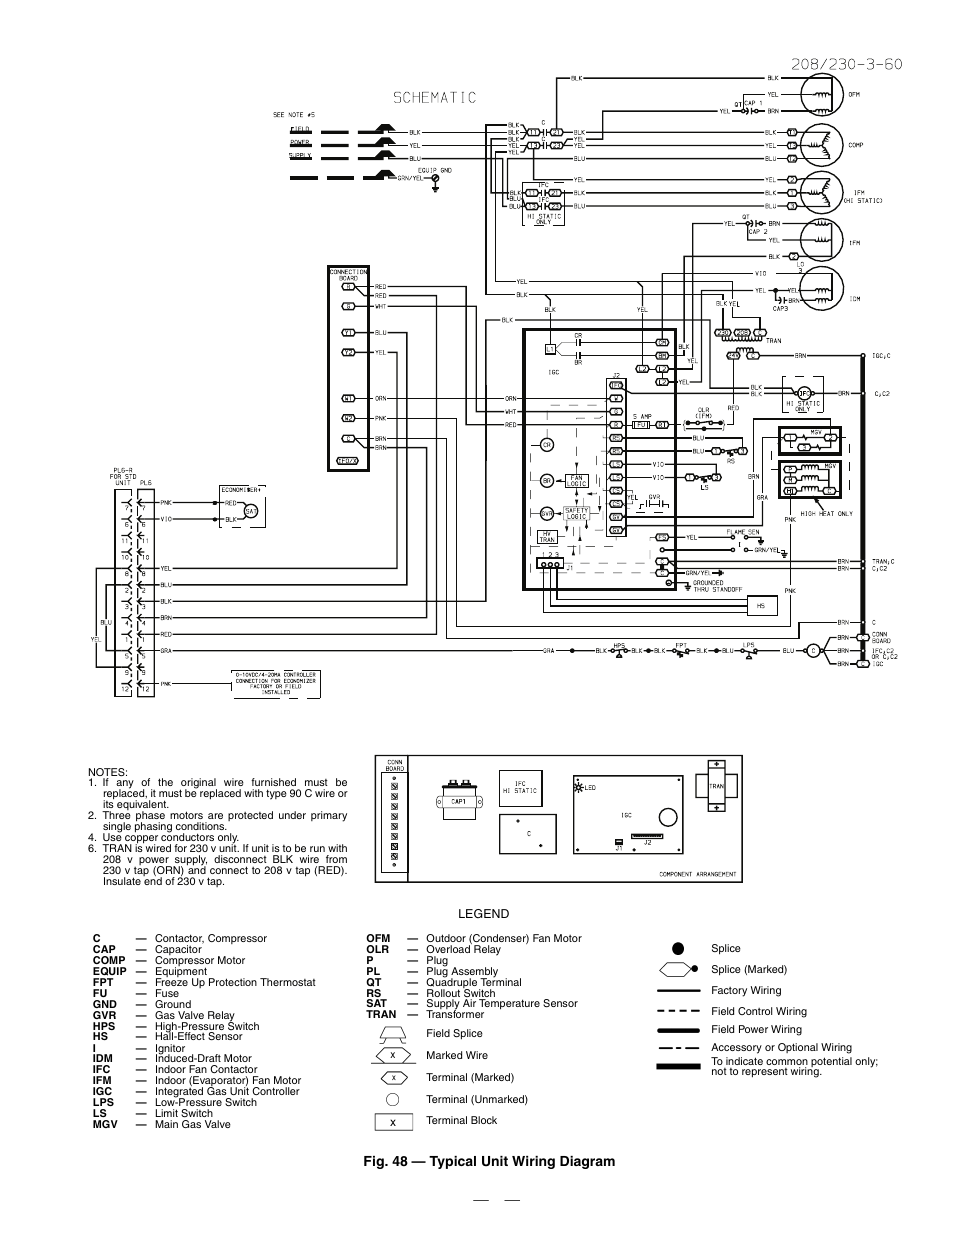 hight resolution of  field pressure switch wiring diagram 48 typical unit wiring diagram bryant durapac series 580f user manual page 57